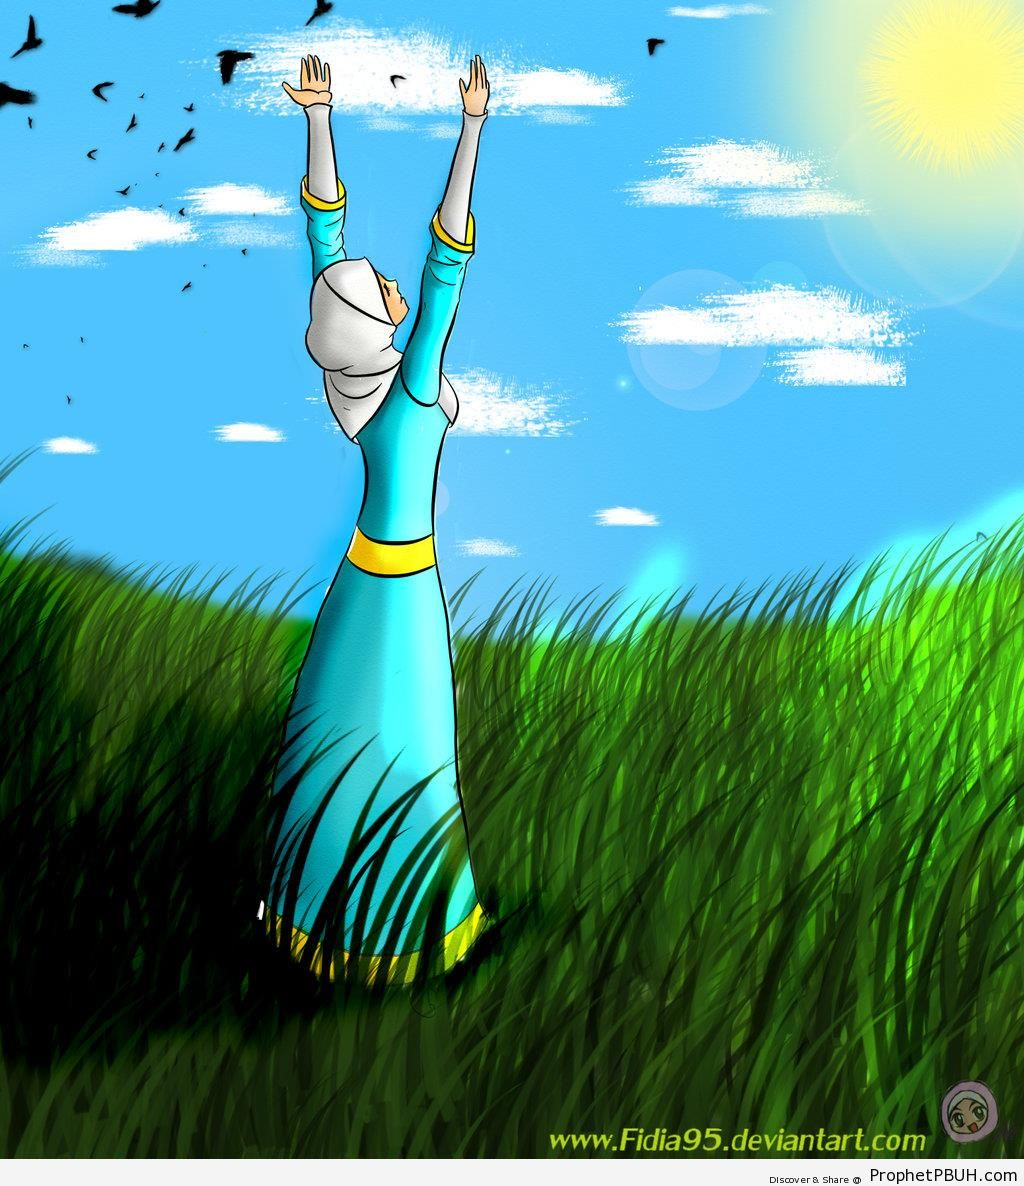 Muslimah in Sunny Green Field With Arms Raised to the Sky - Drawings